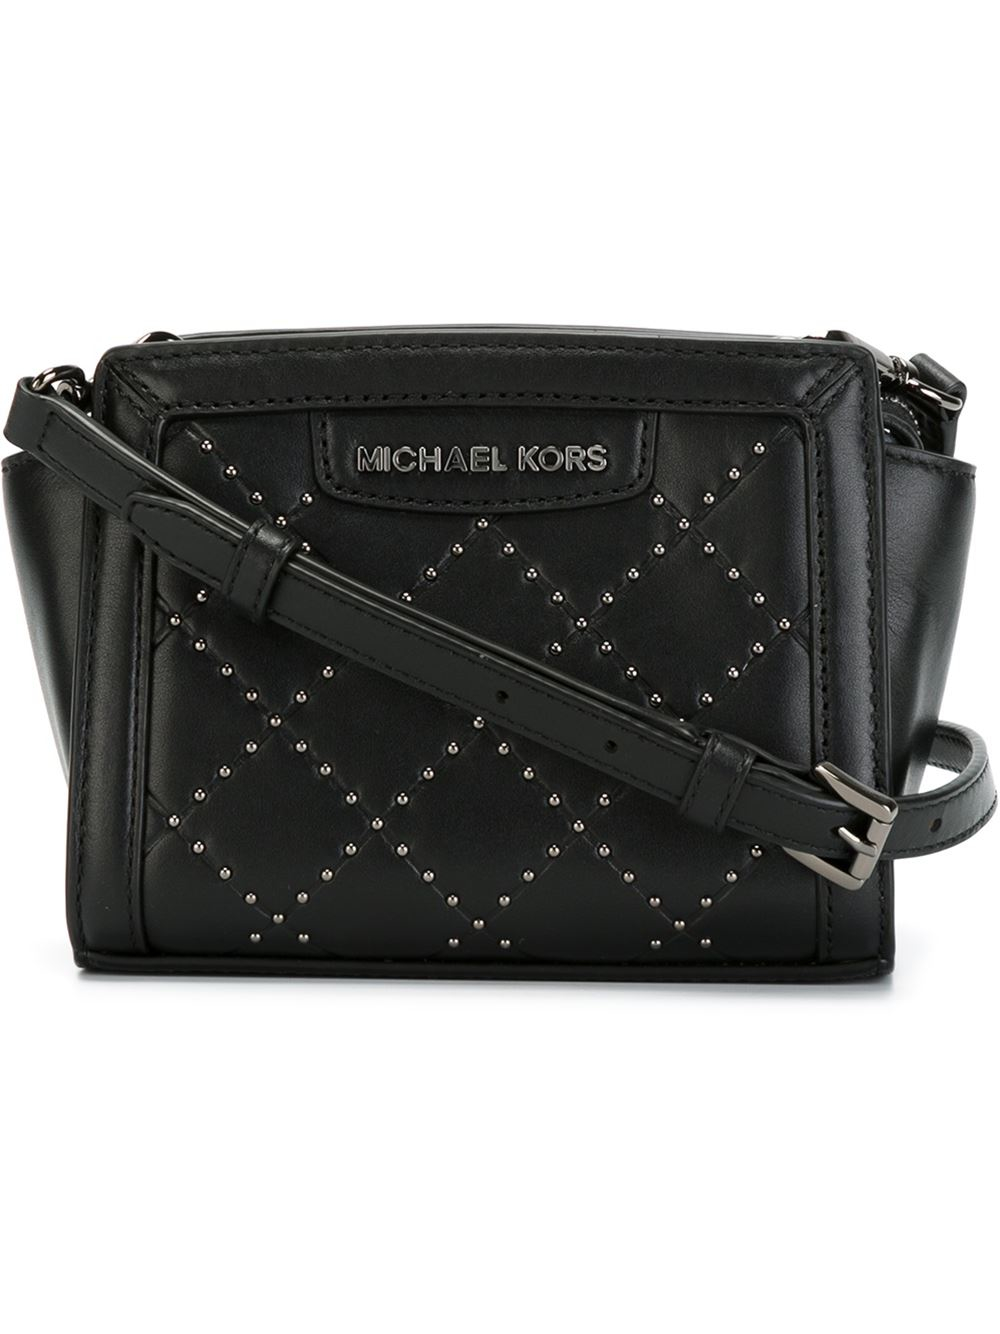 db9c006788fb Michael Kors Selma Black Mini Cross Body Bag | Stanford Center for ...